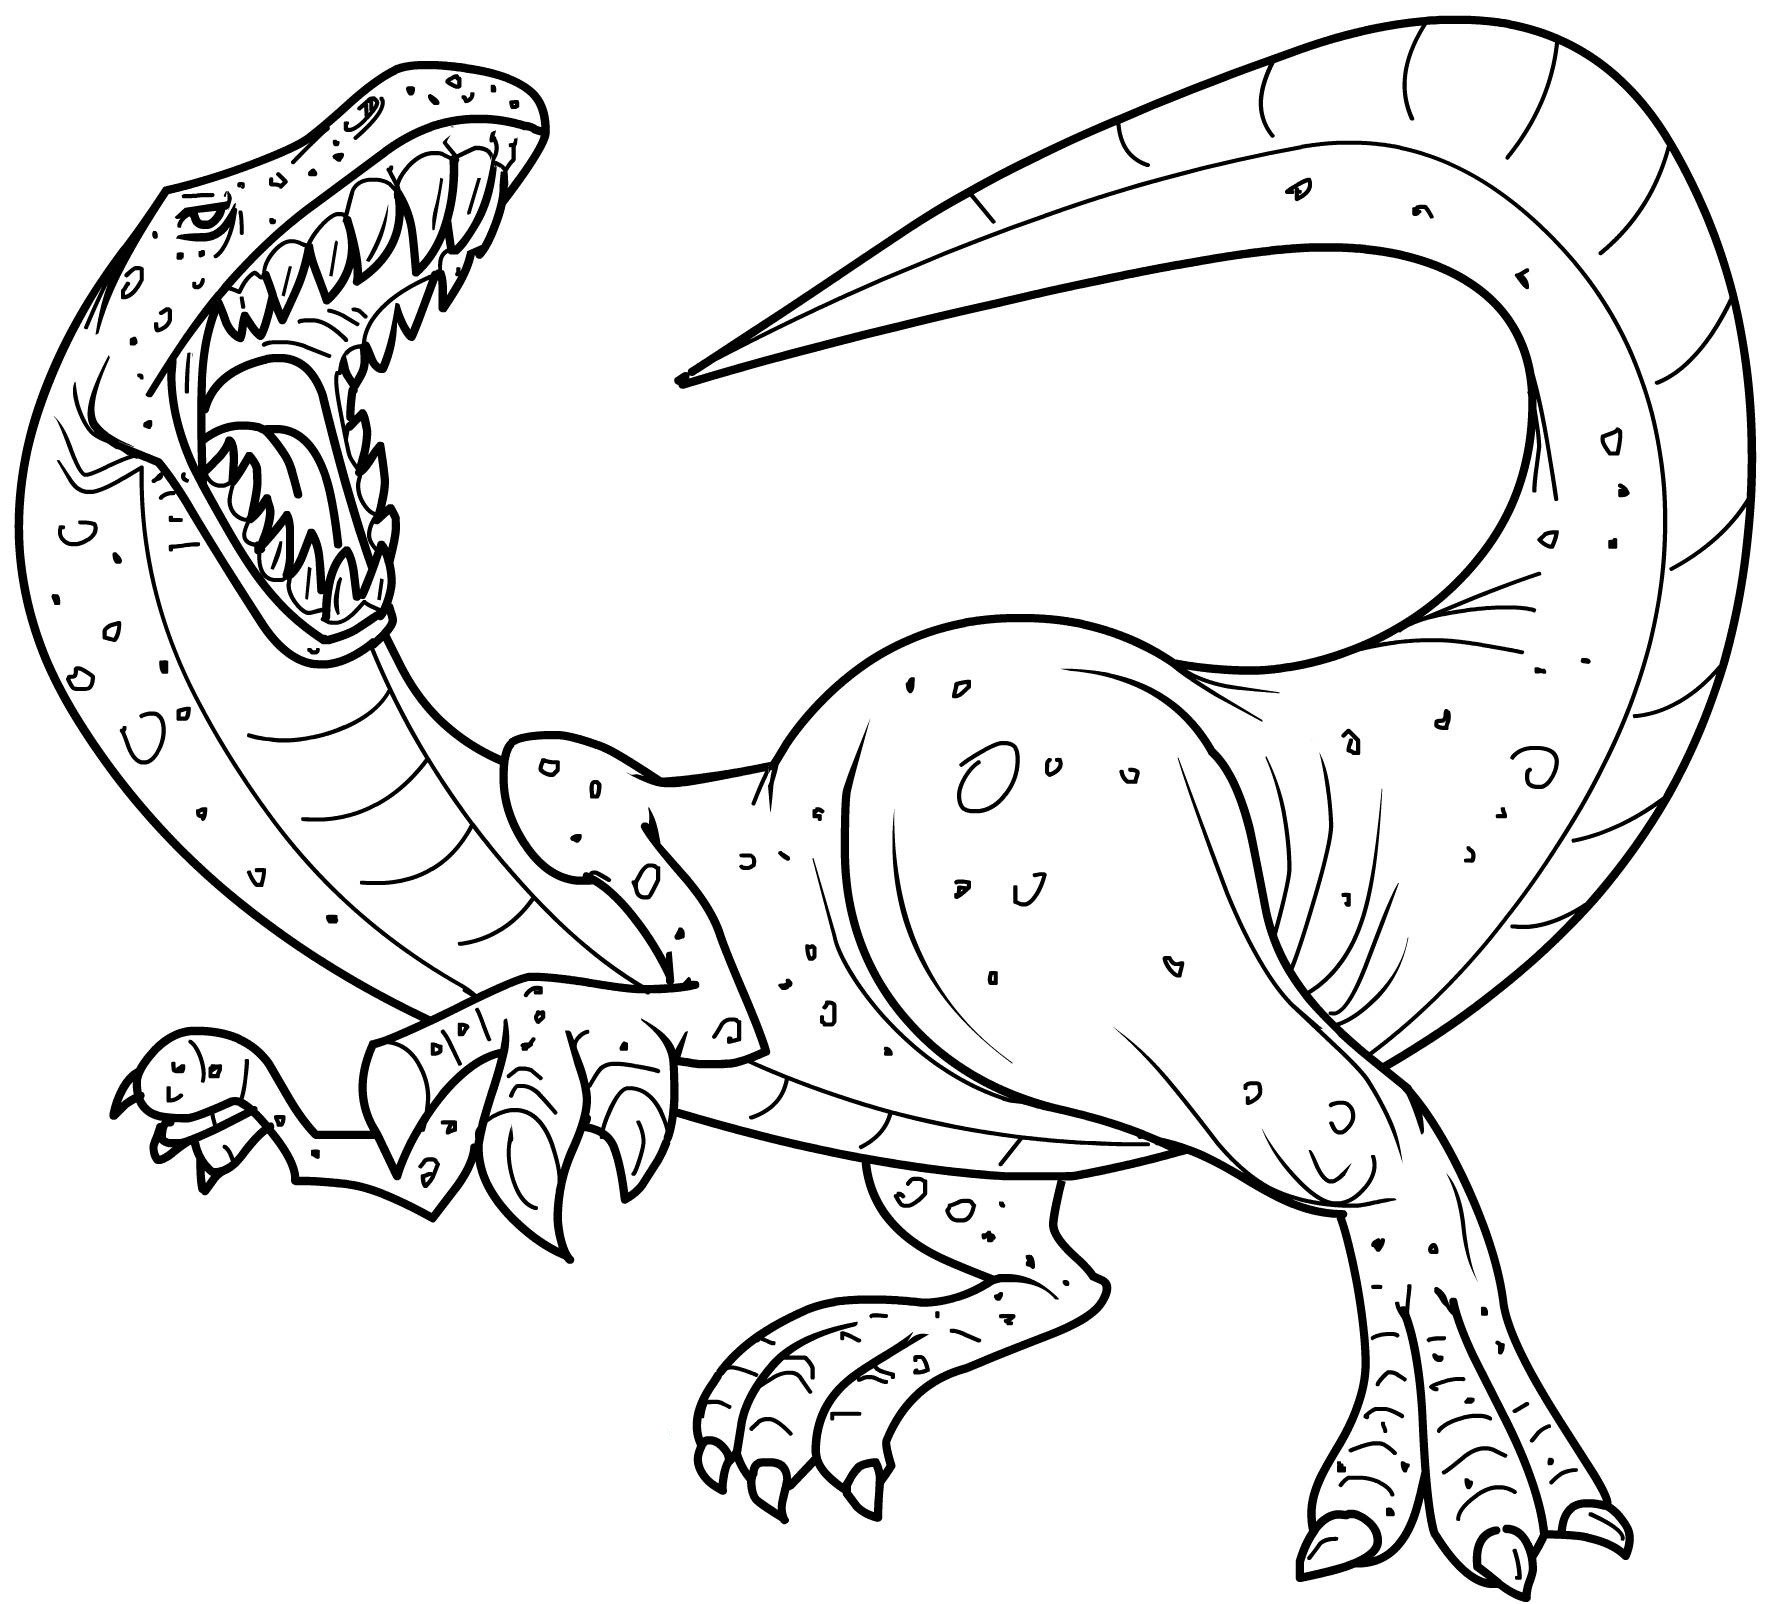 Coloring pages dinosaurs